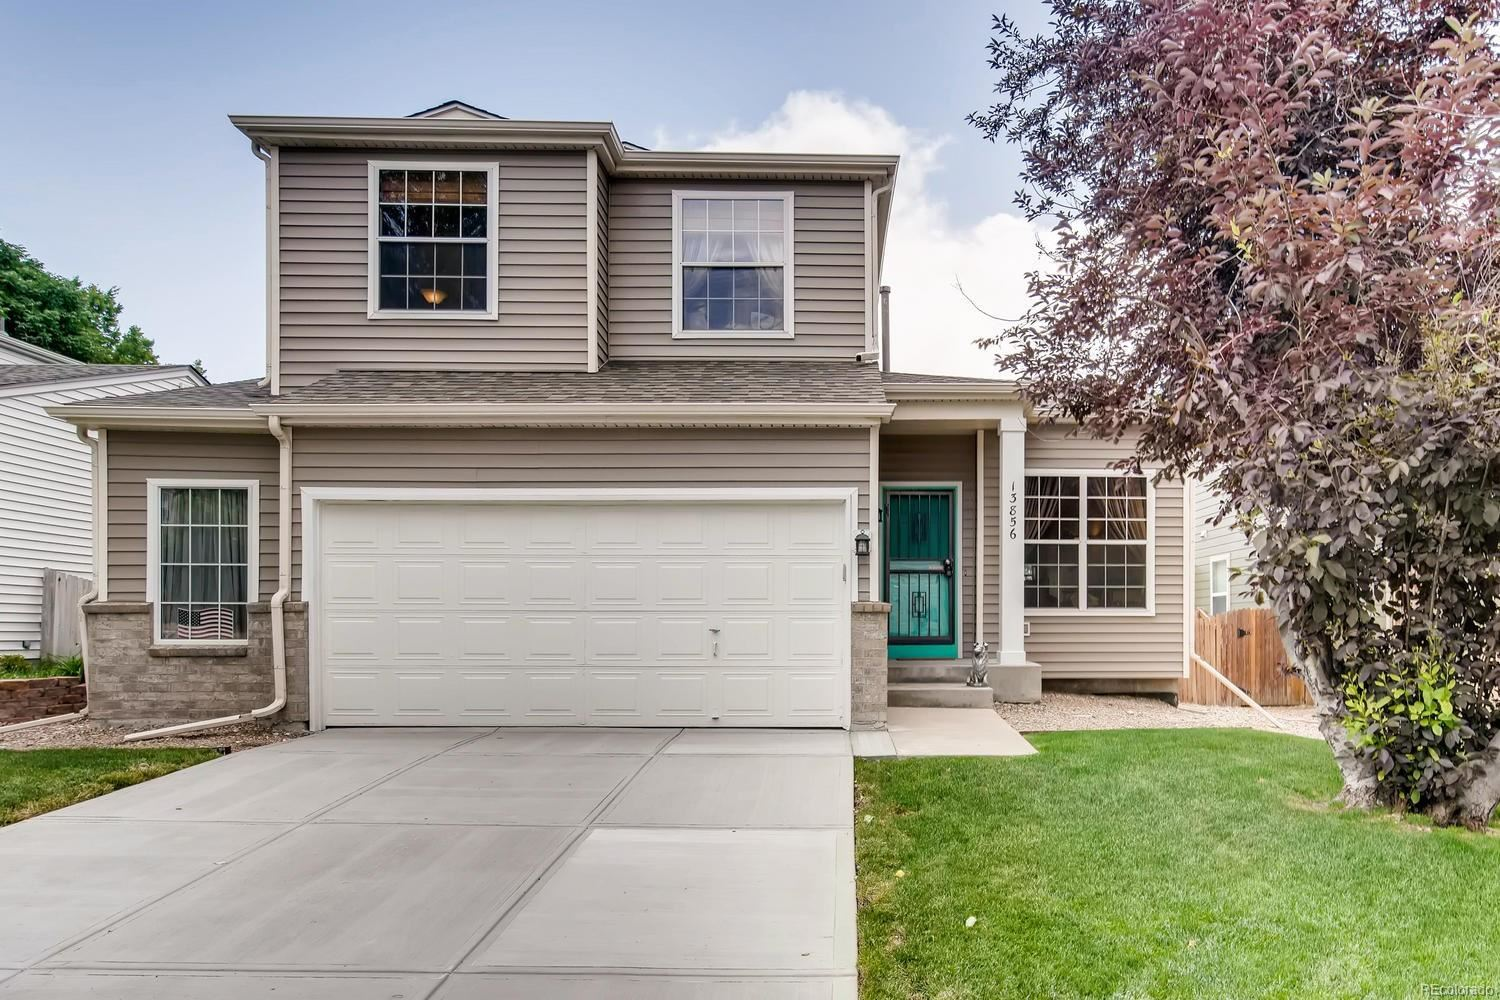 13856 West Amherst Drive, Lakewood, CO 80228 - MLS#: 4348932